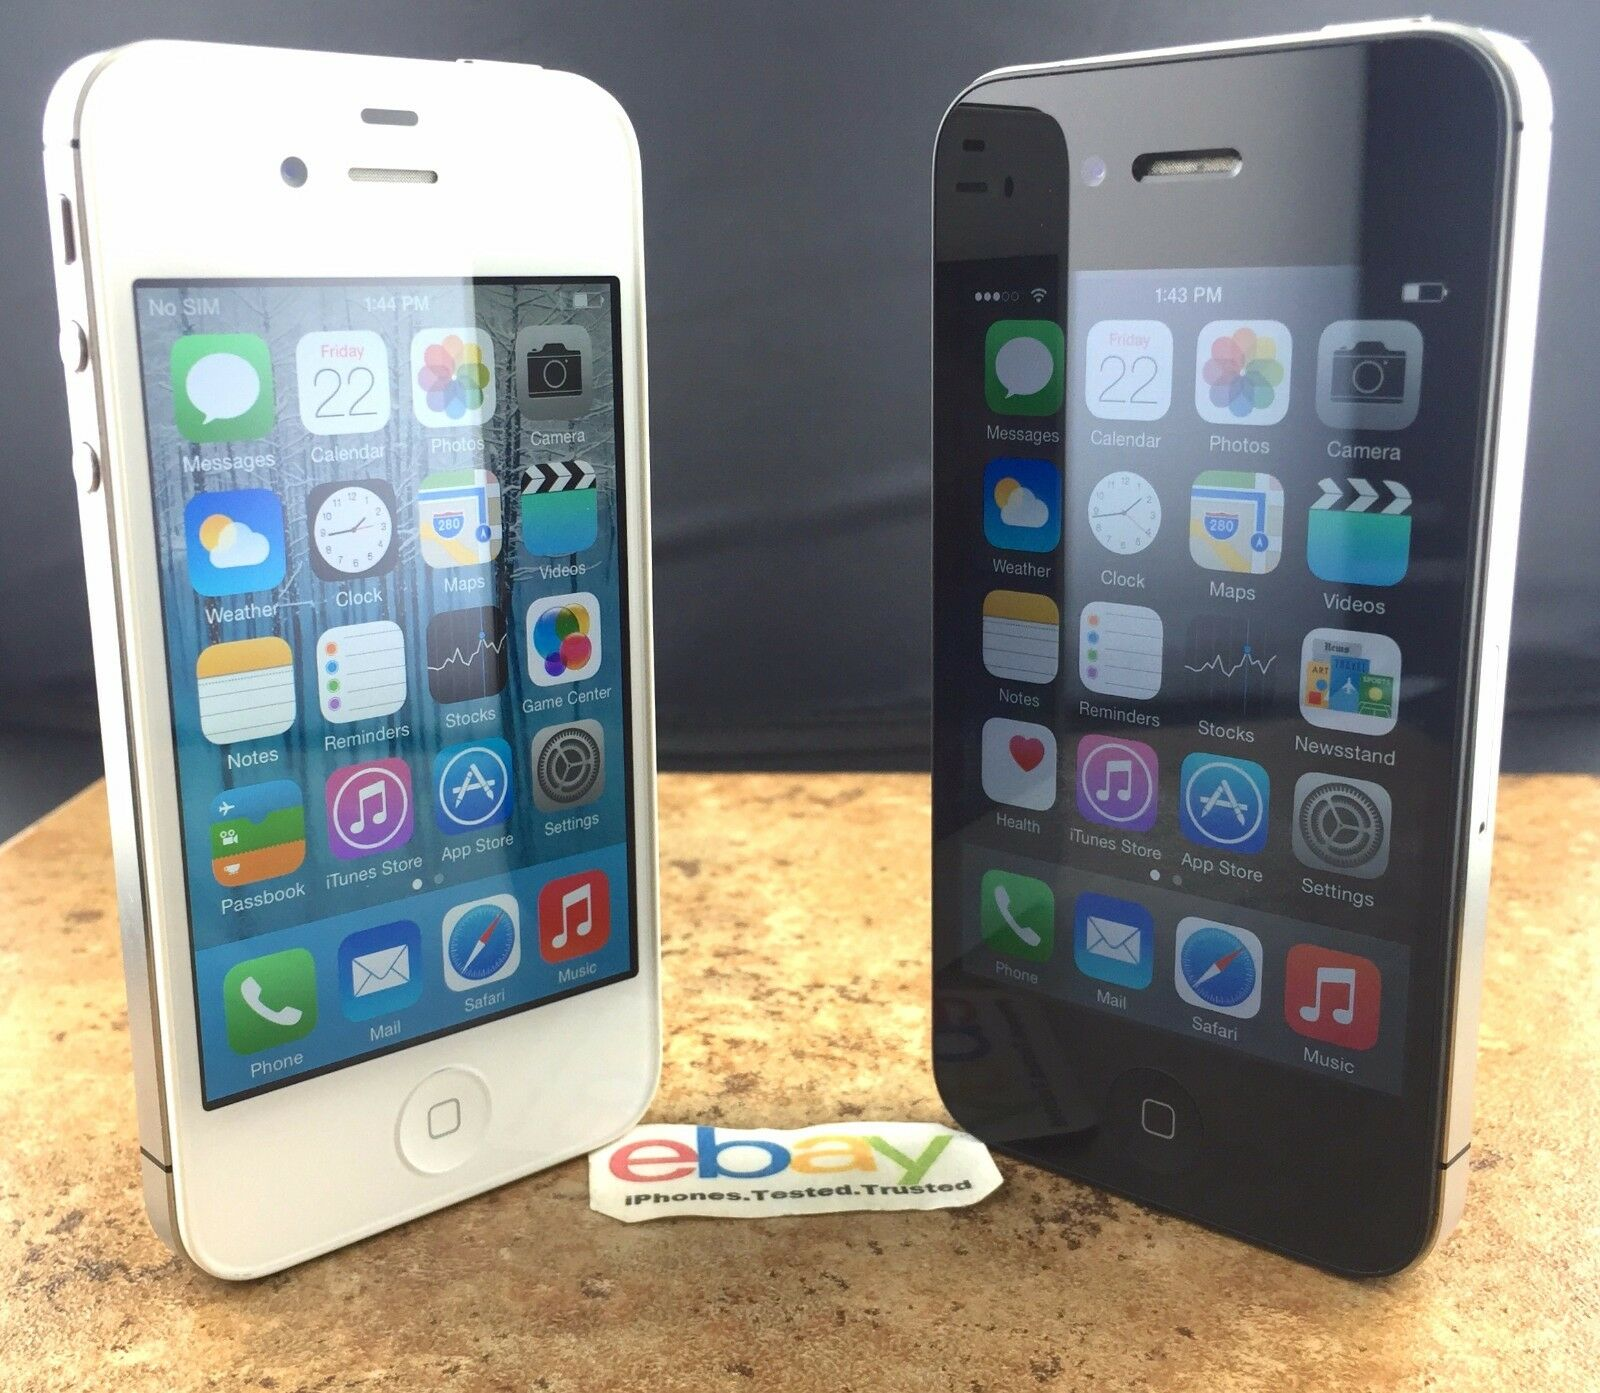 t mobile iphone 4s apple iphone 4s black white factory unlocked at amp t t 6495